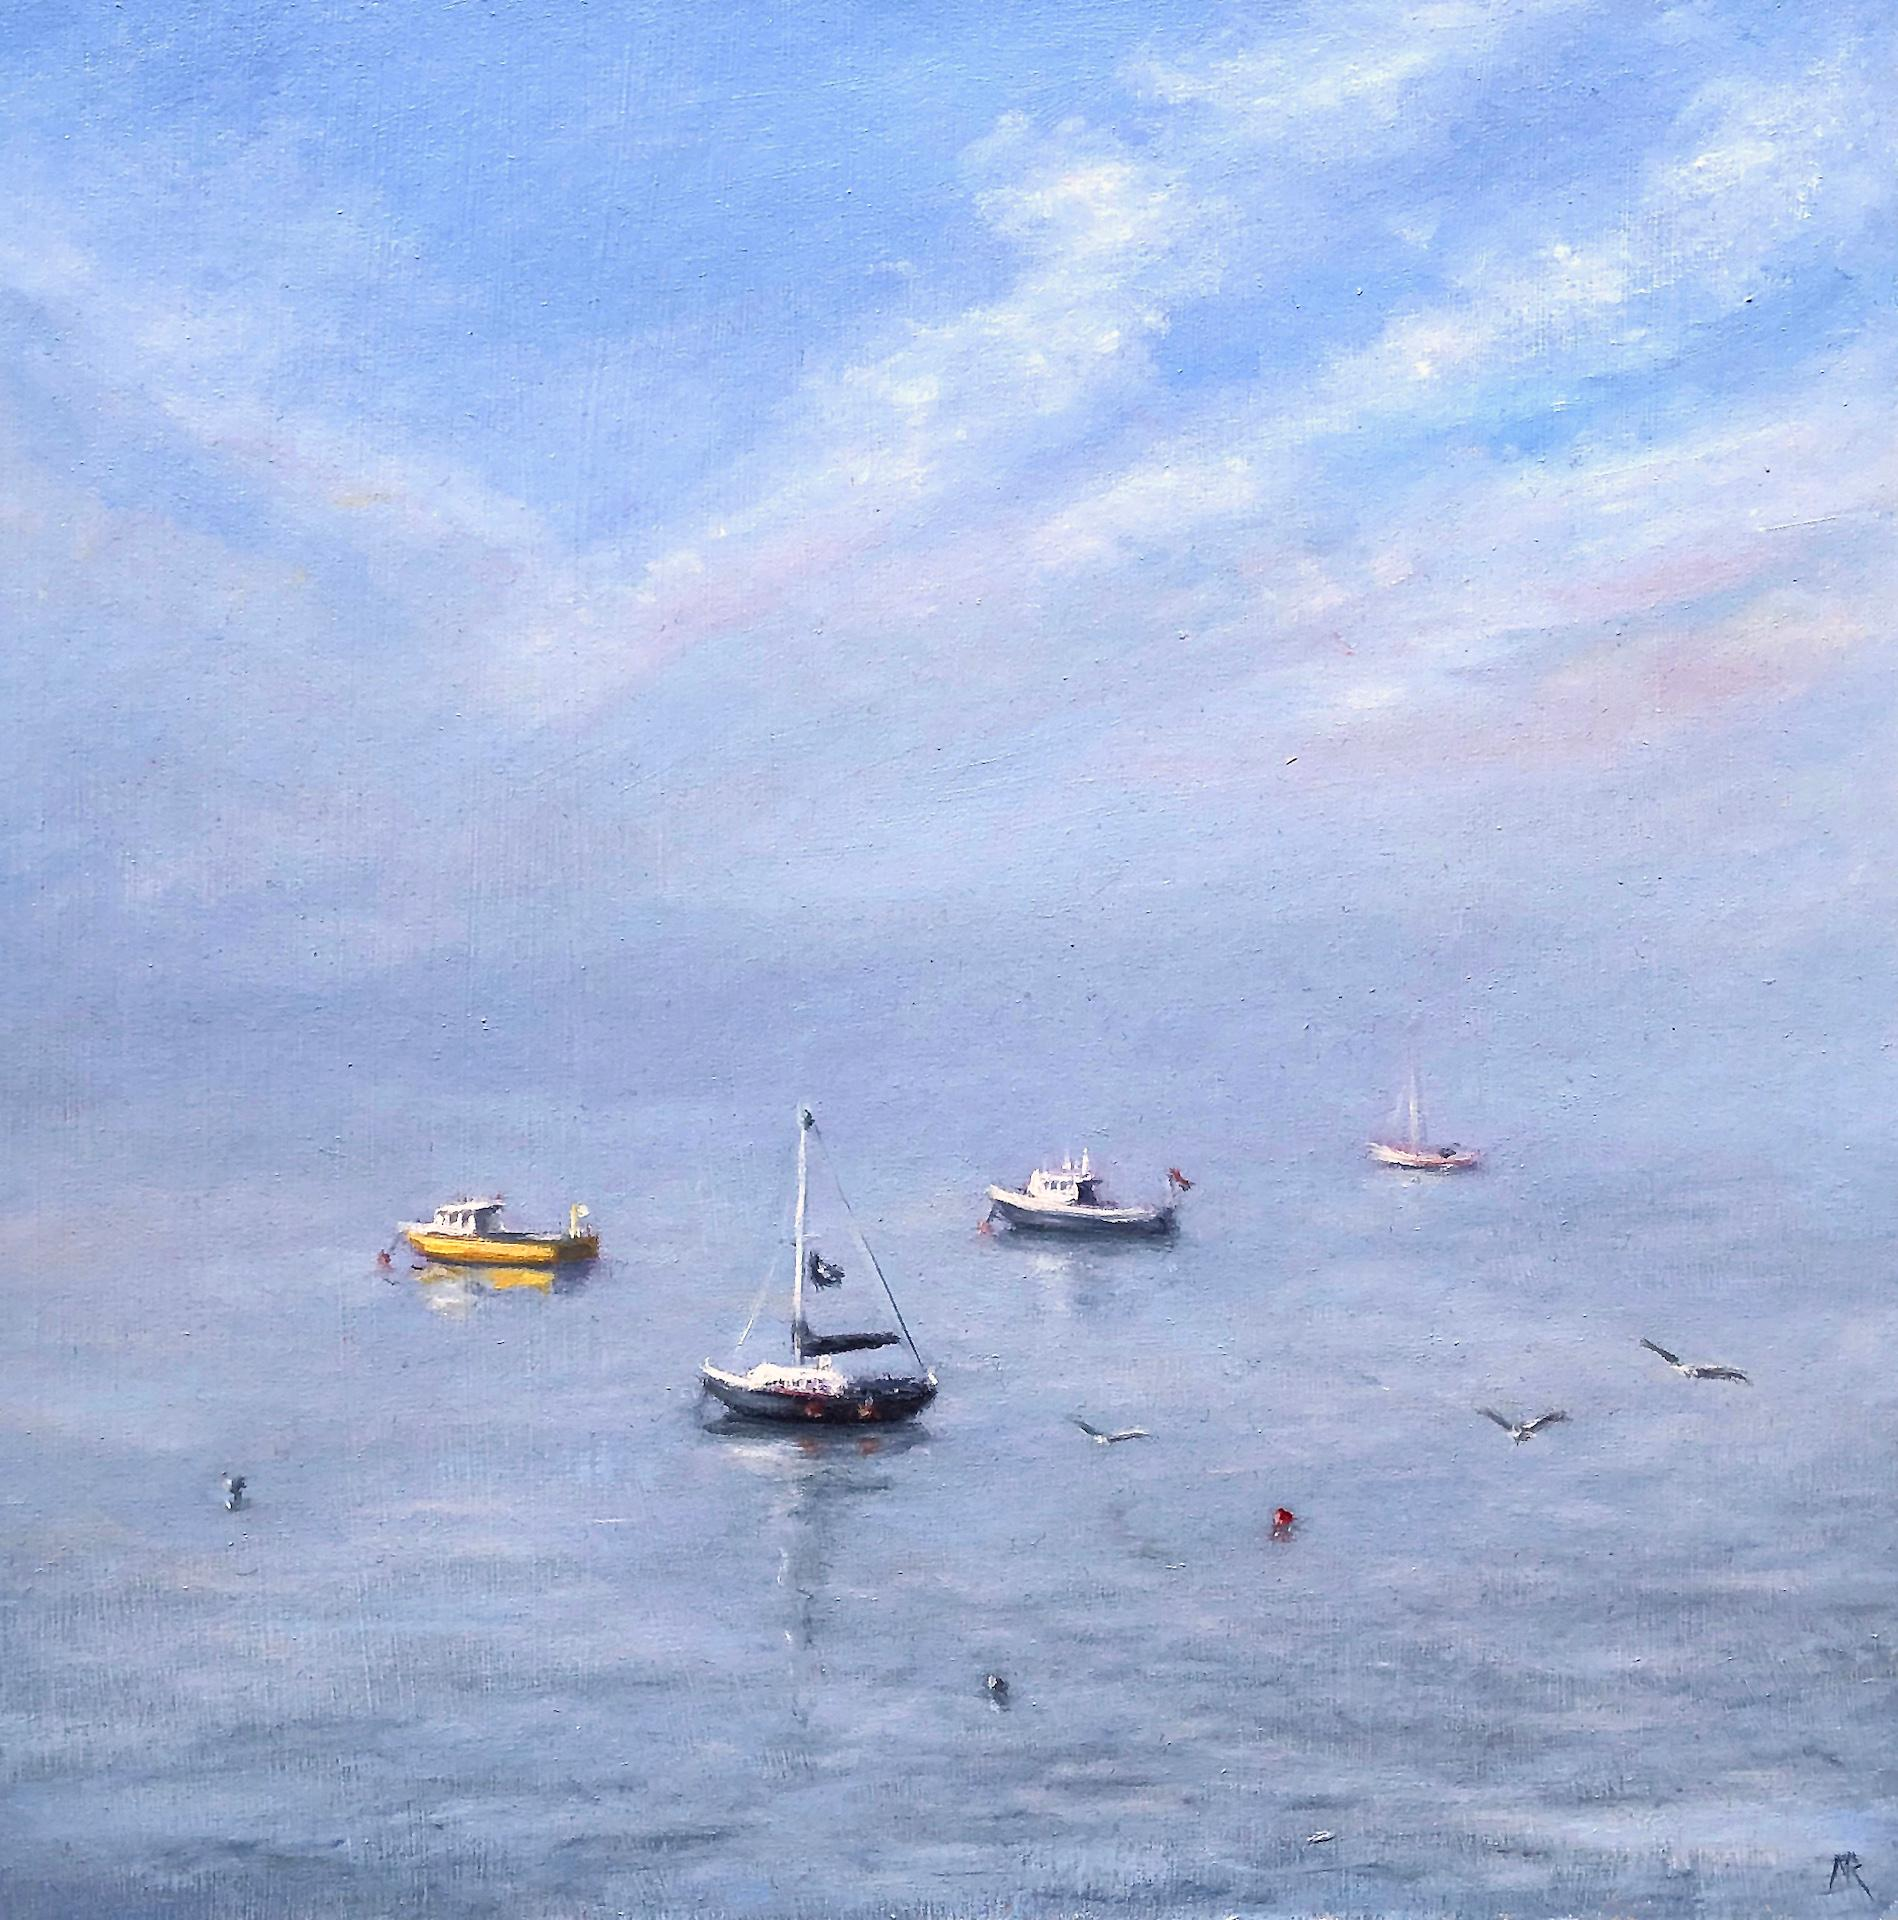 Marie Robinson, Afternoon Calm, Original Seascape Painting, Affordable Art